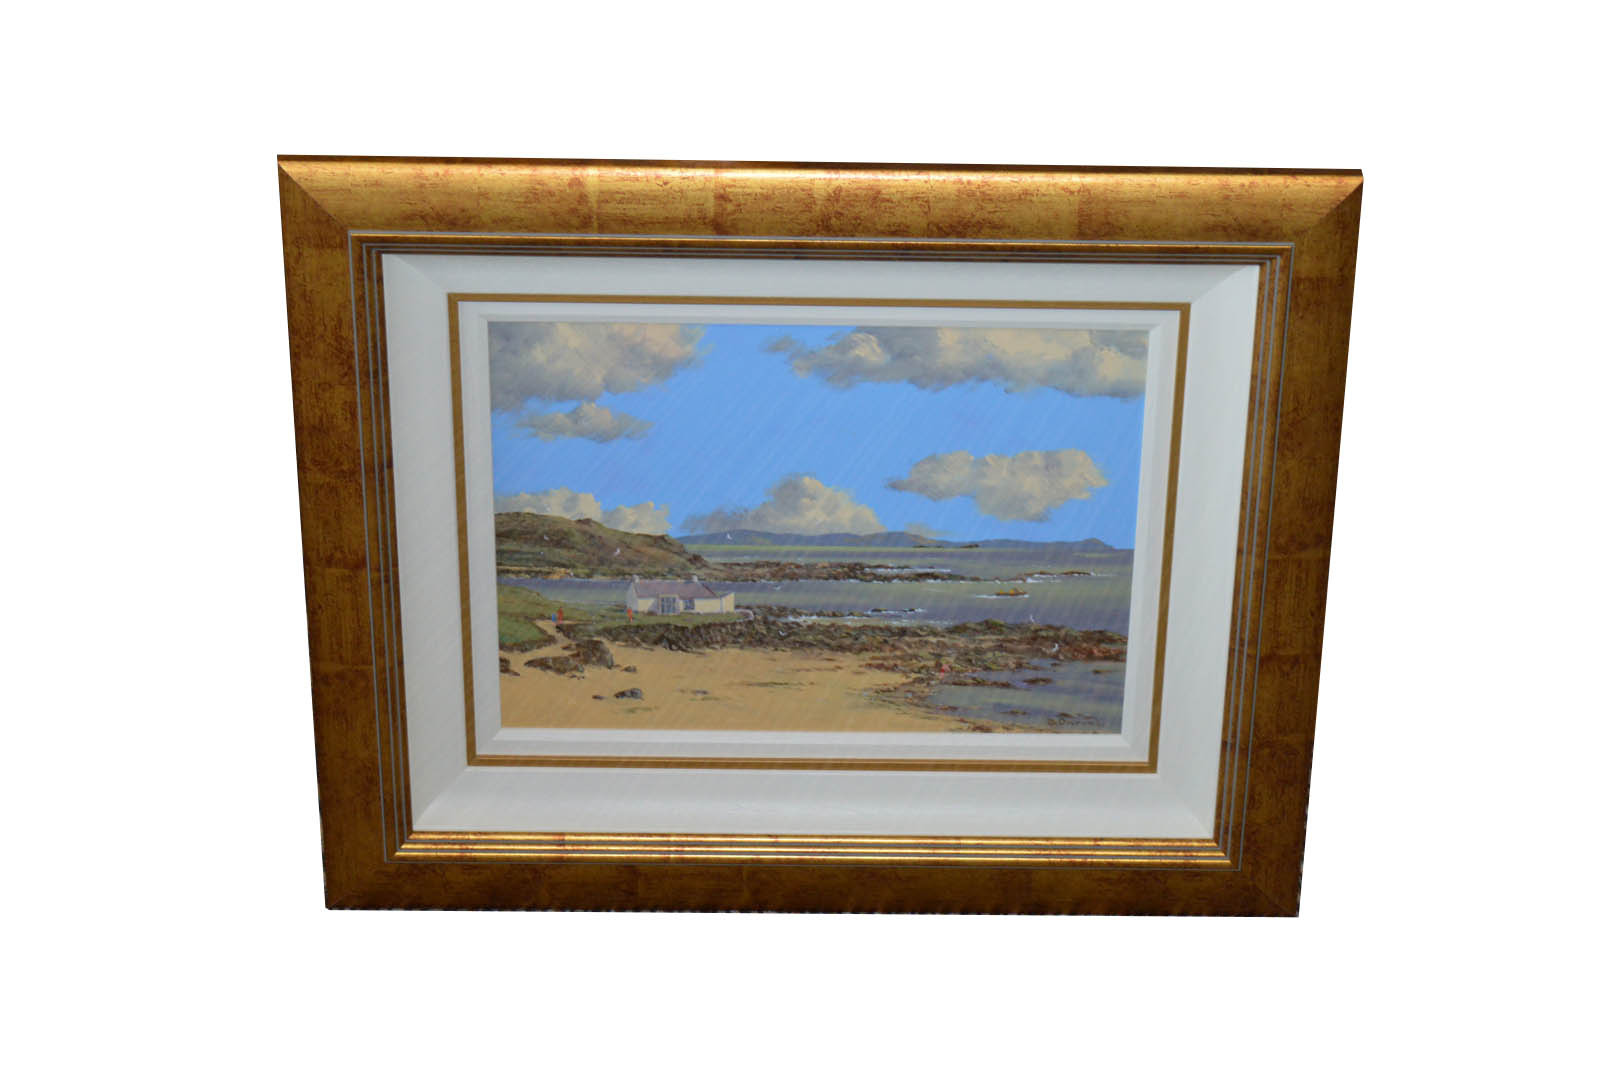 Lot 305 - A Framed Oil 'Portballintrae' - David Overend